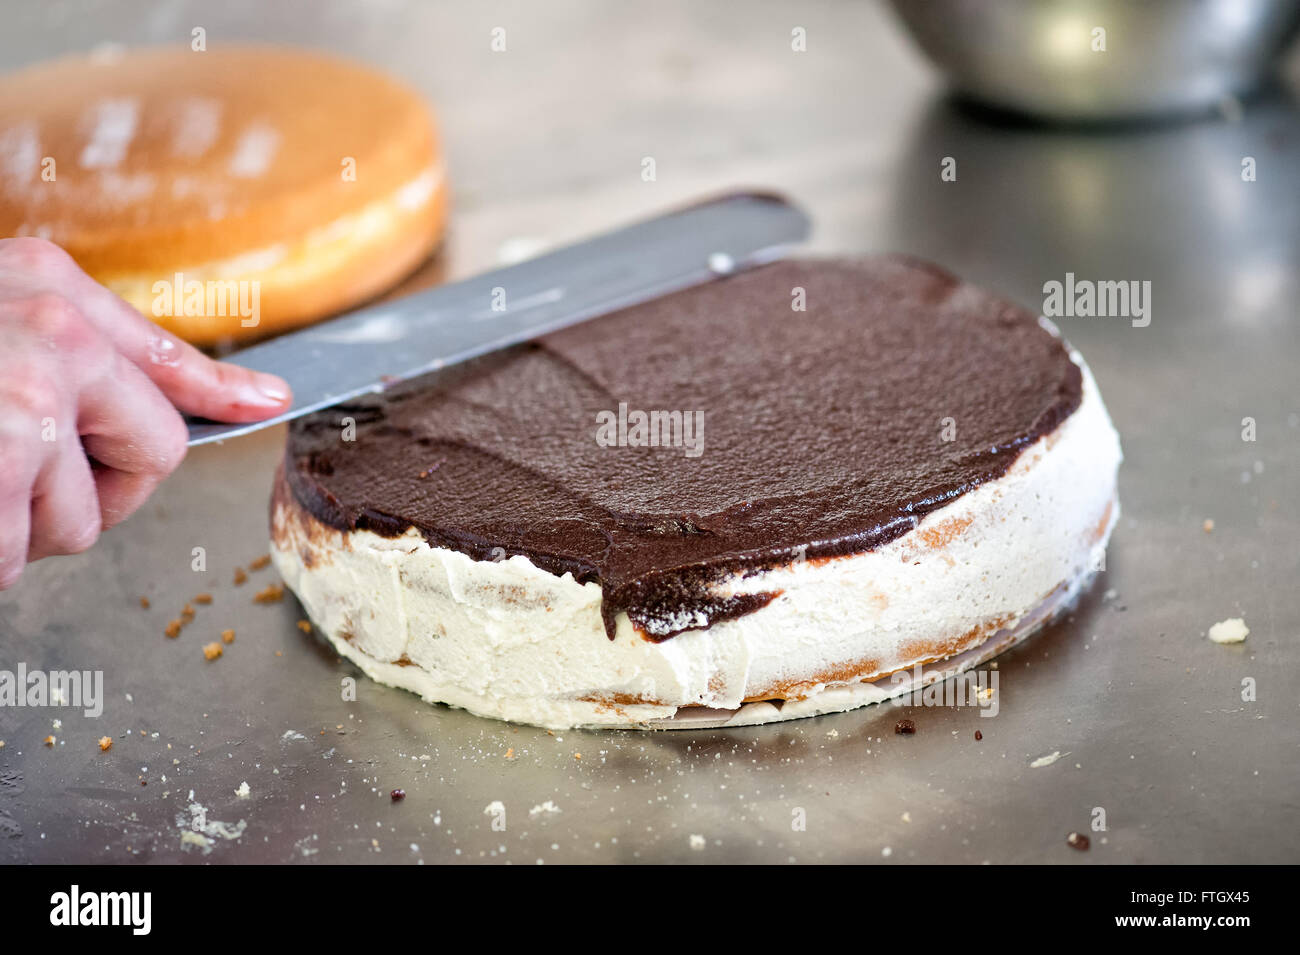 Baker or pastry chef icing a freshly baked chocolate cake using a large flat spatula as he works in a bakery - Stock Image